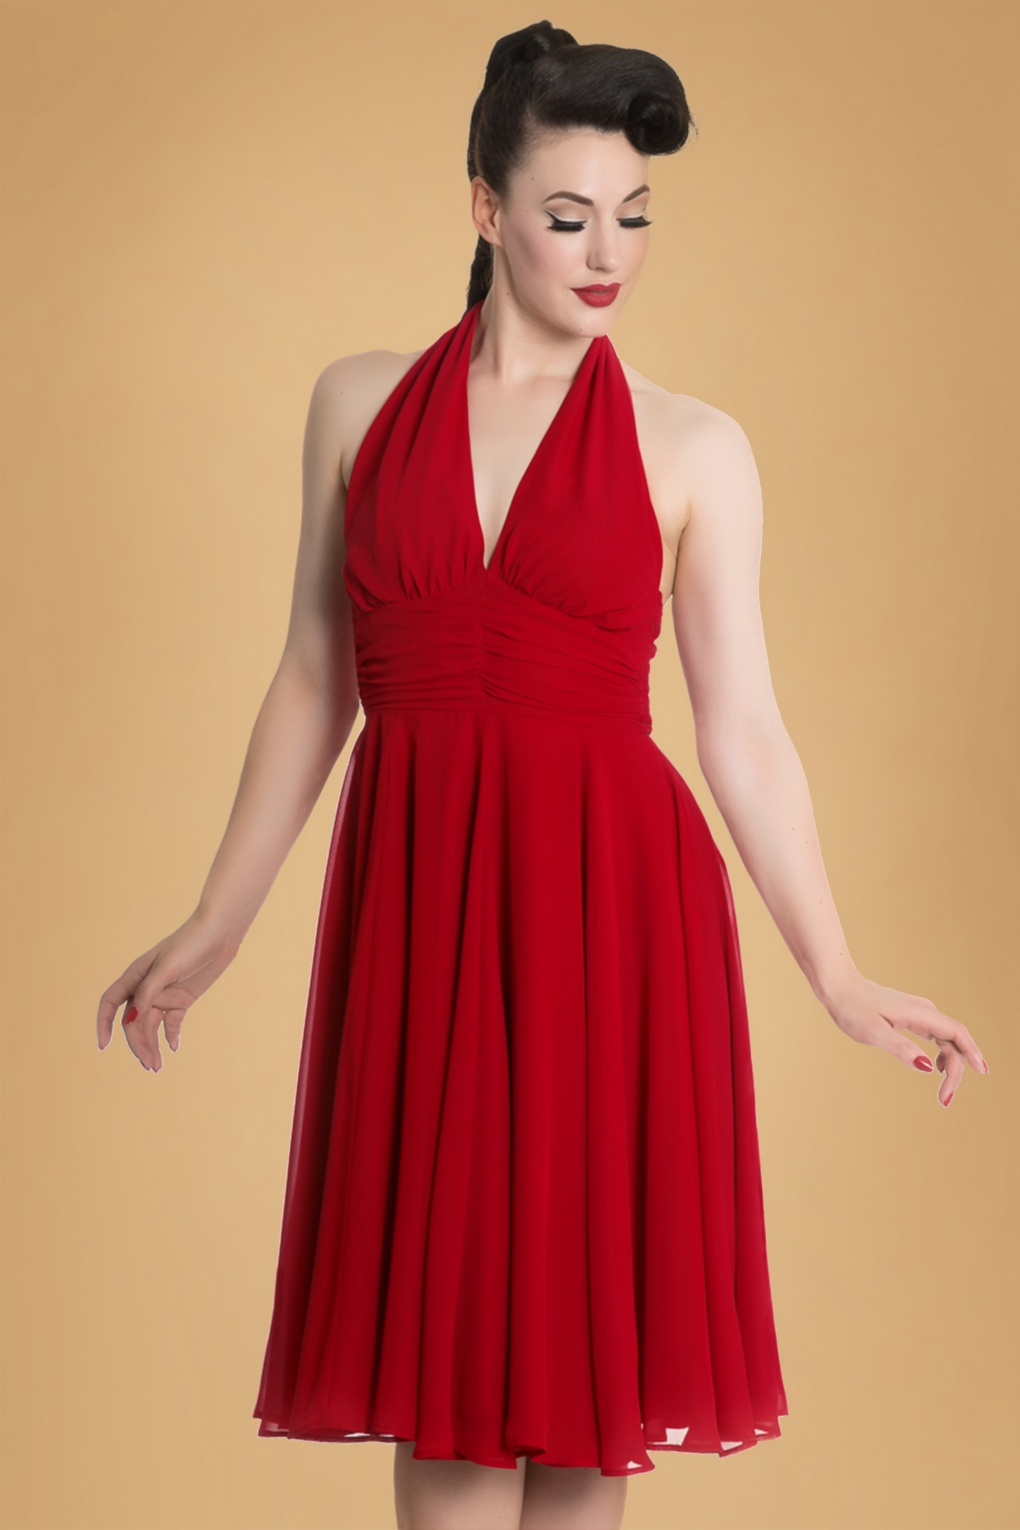 2019 year lifestyle- Monroe Marilyn red dresses pictures